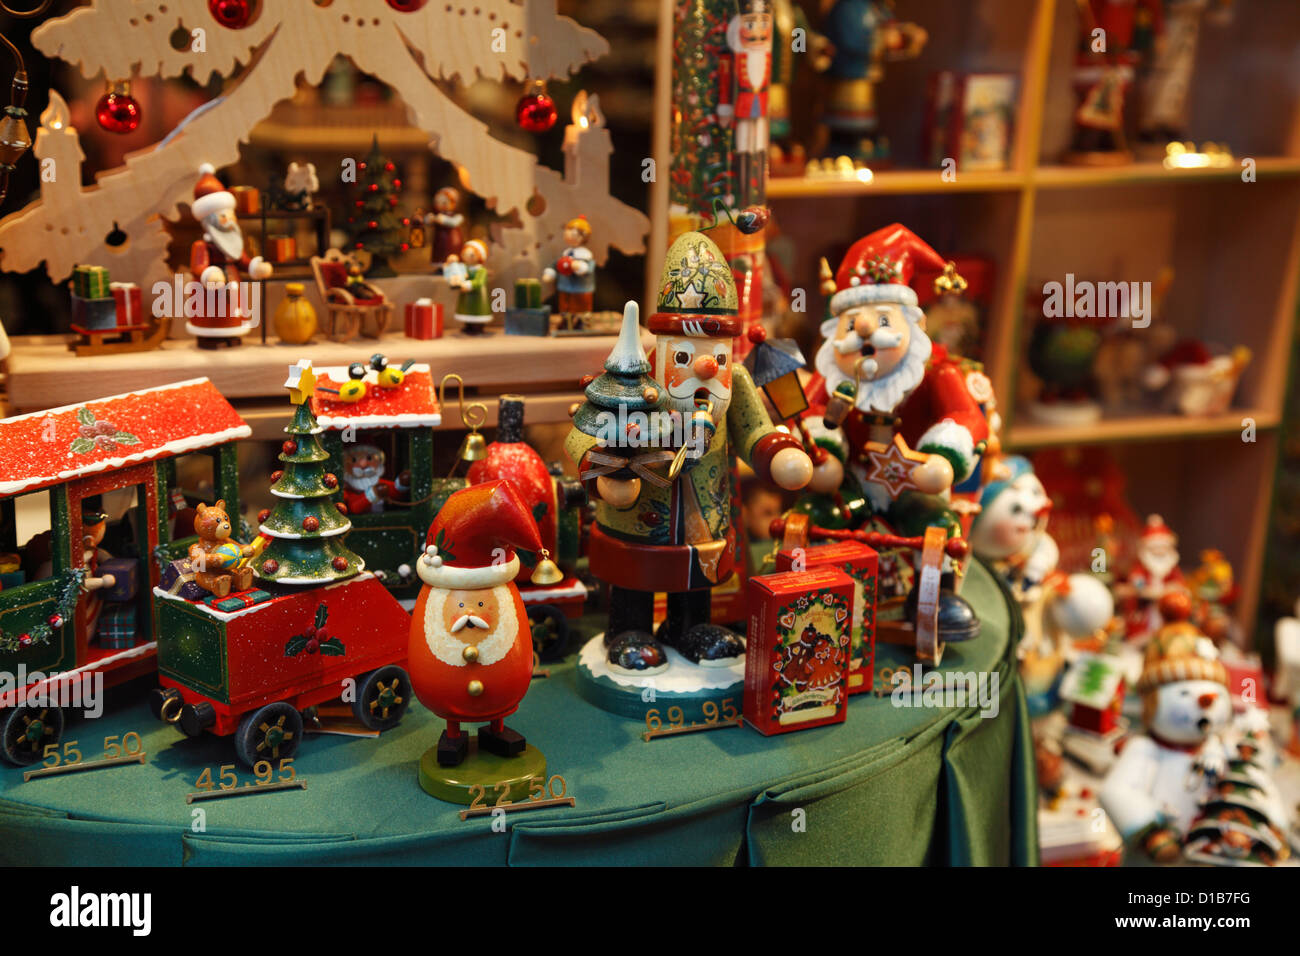 Toys At Christmas : Christmas toys and decorations in a store window display